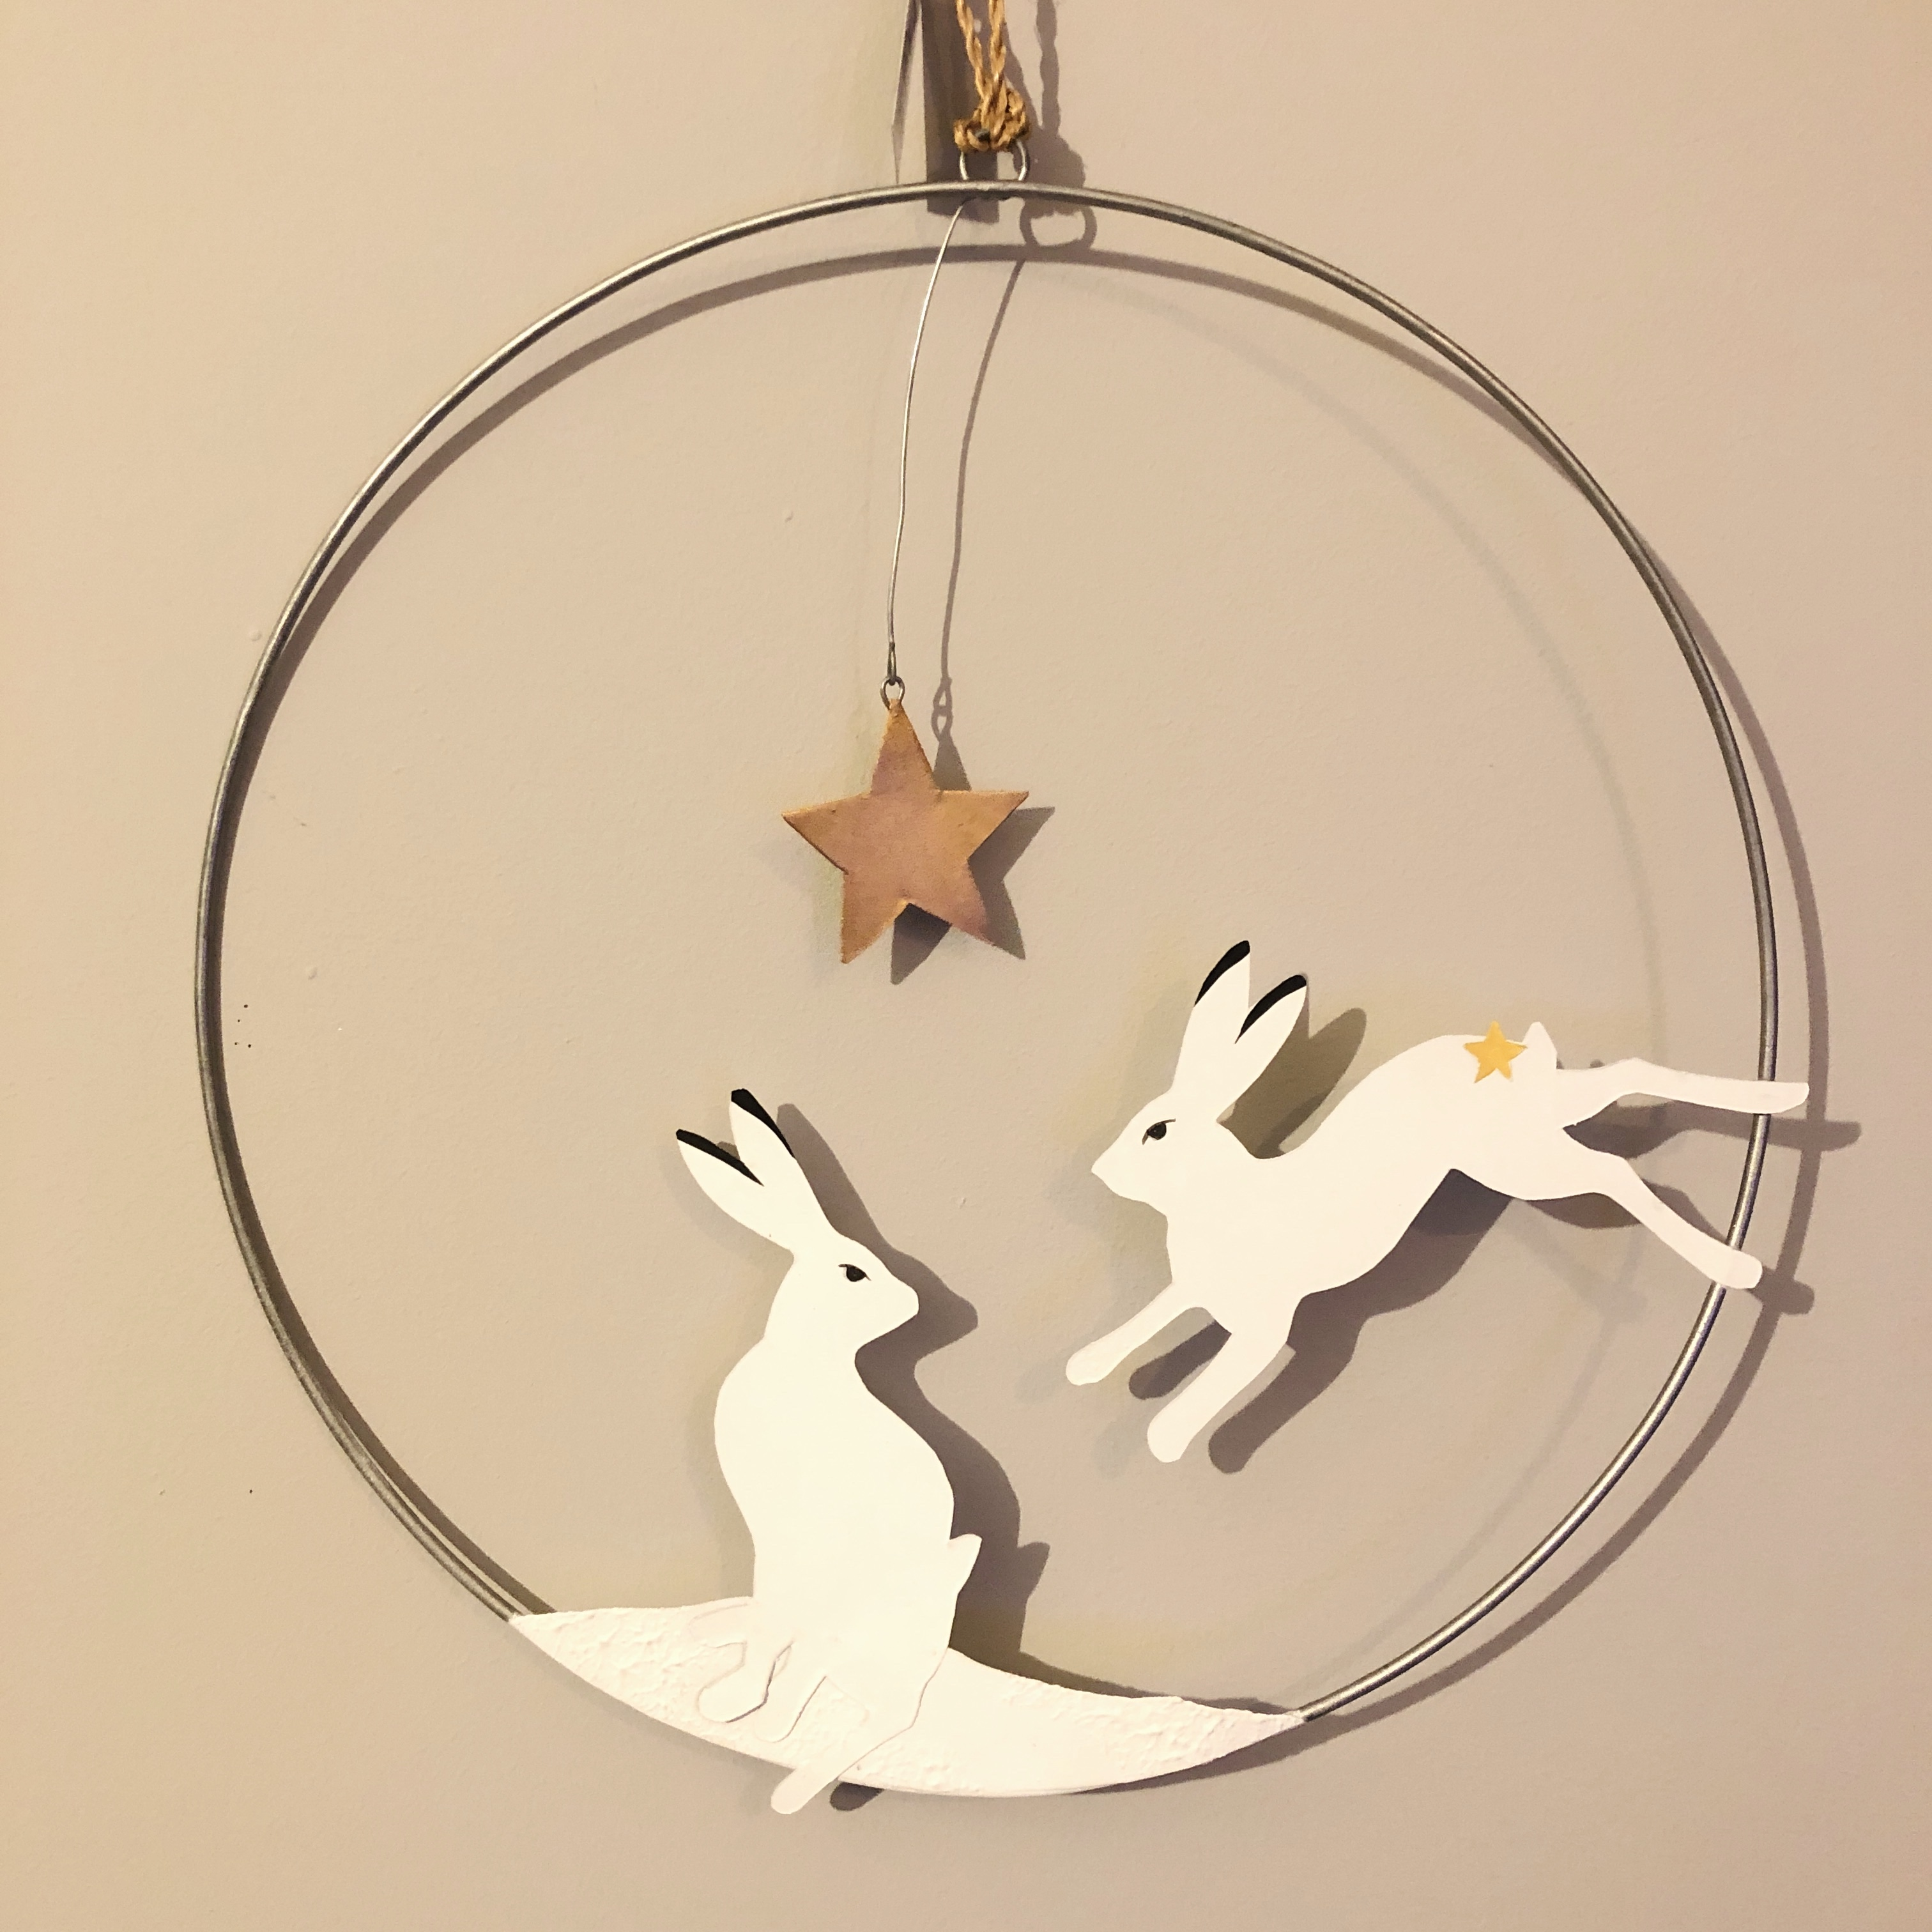 Artic hare hanging Christmas wreath by shoeless joe